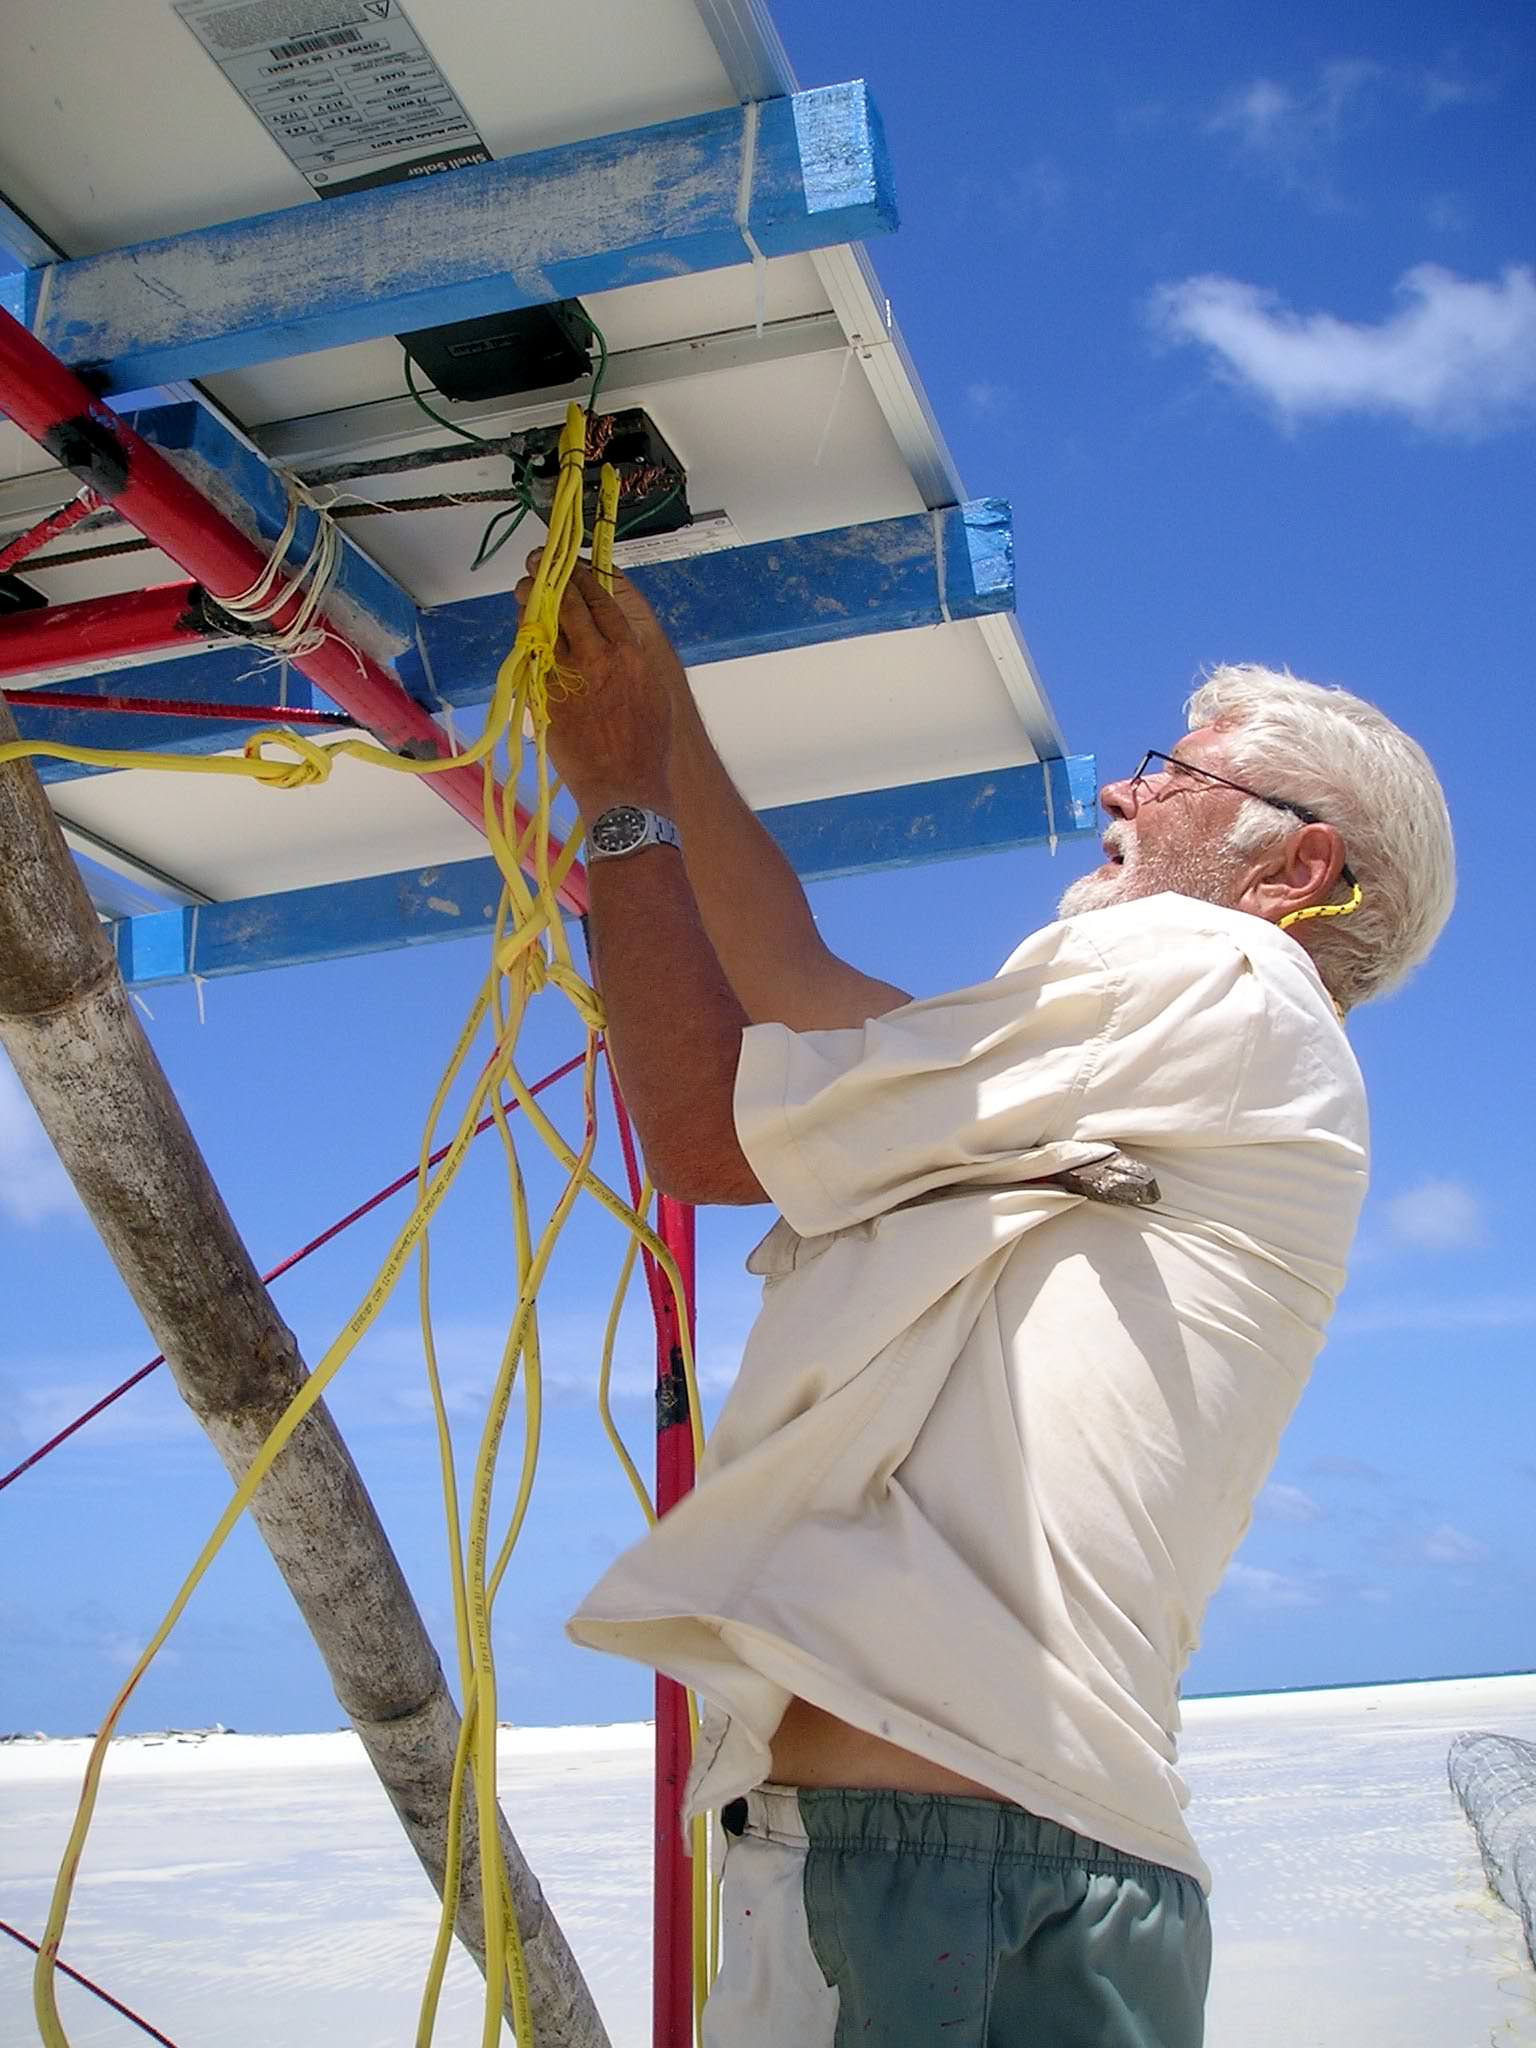 Wiring the panel connections to the structure. (Caspar Henderson)